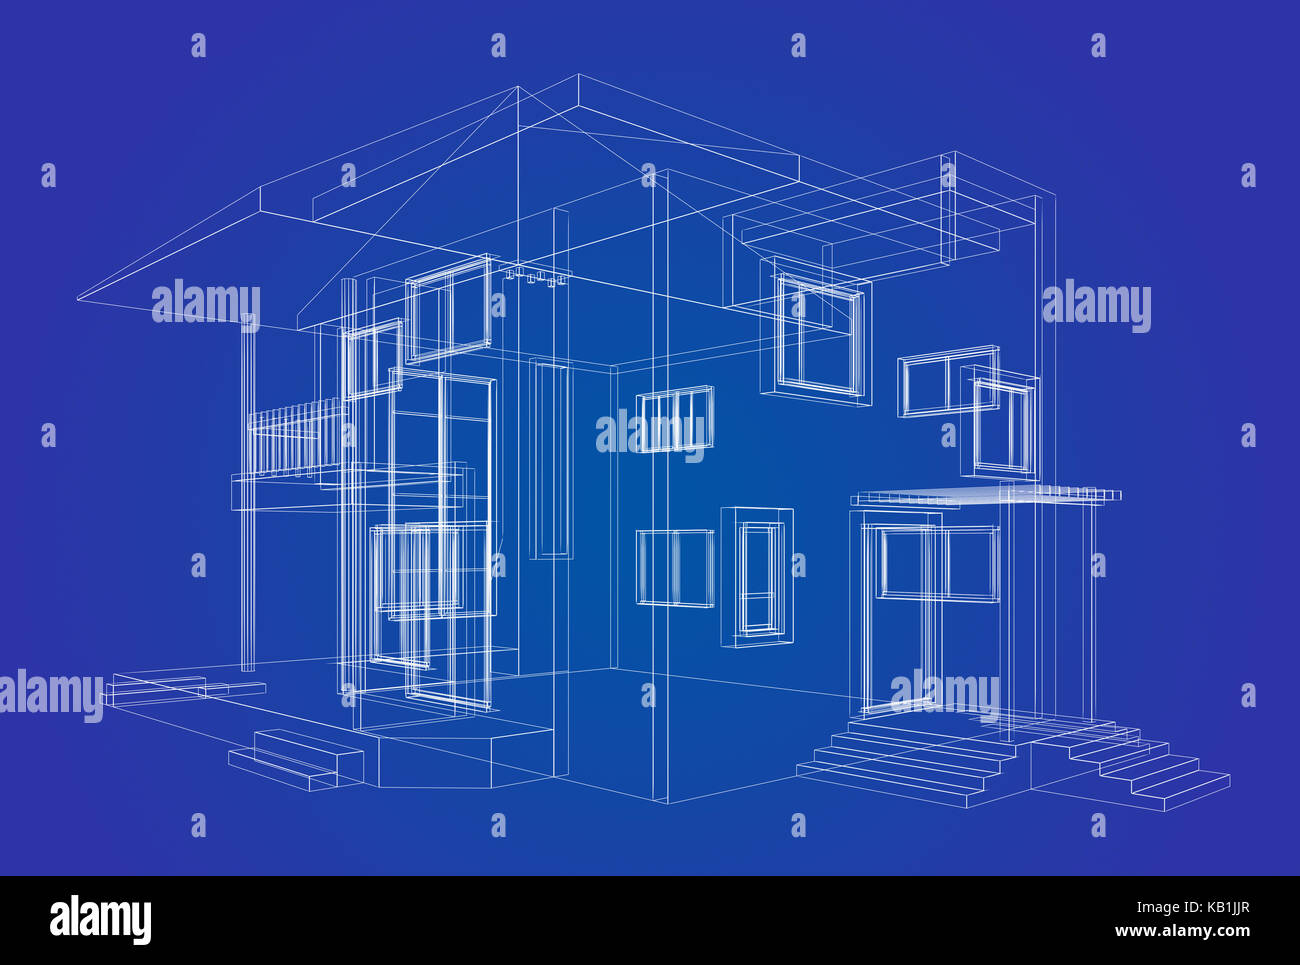 Blueprint project building design and 3d rendering model my own blueprint project building design and 3d rendering model my own malvernweather Choice Image